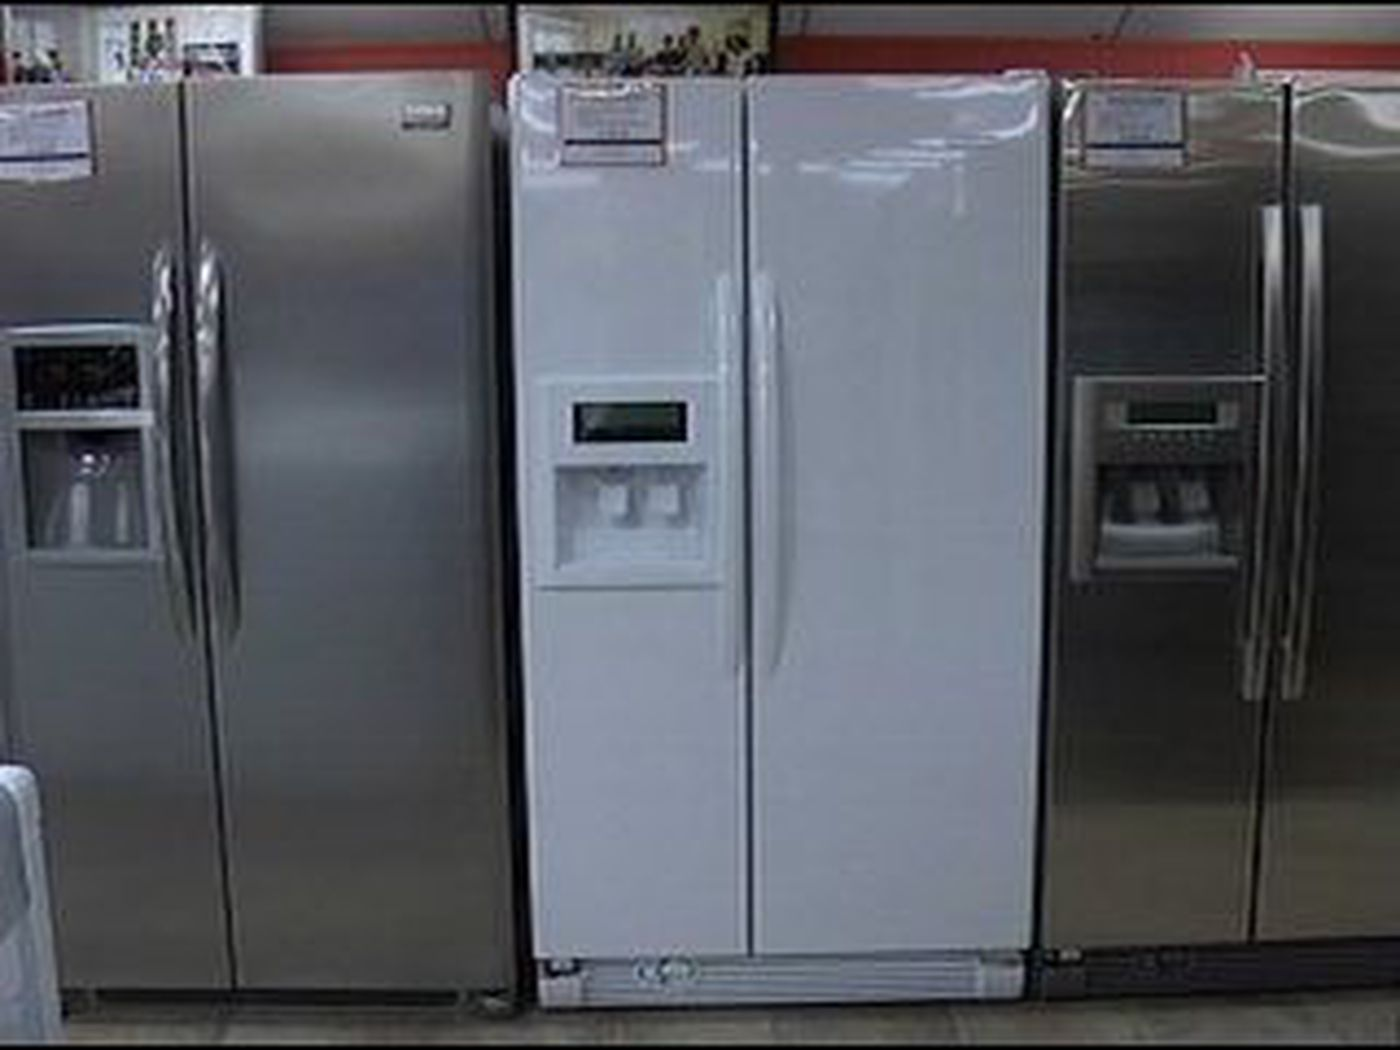 State offering cash for appliances